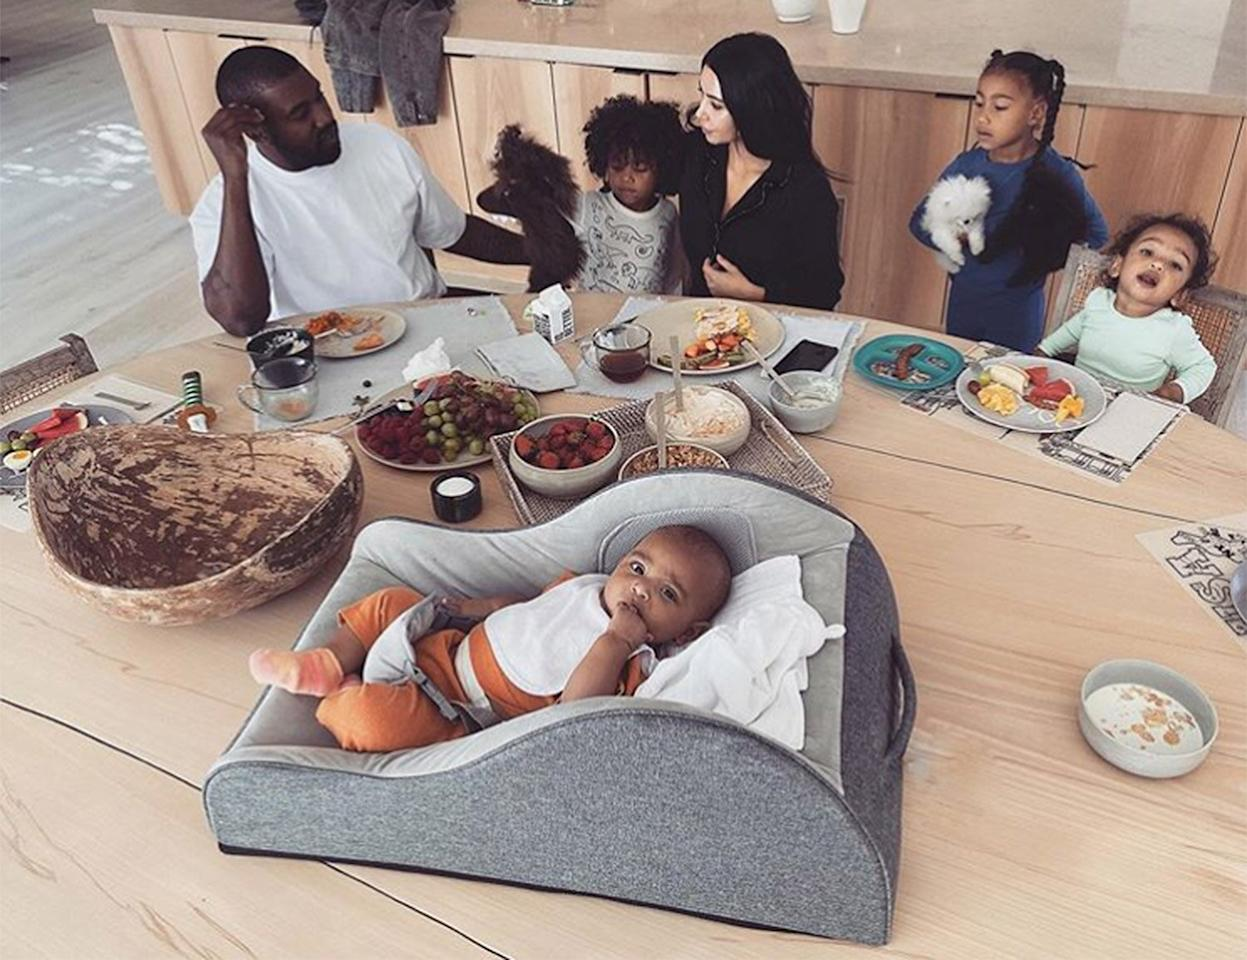 "The entire Kardashian-West family sat down for a big <a href=""https://www.instagram.com/p/B7oHS0MgyNe/?igshid=16wcayl7y4uit"" target=""_blank"">breakfast together</a>. ""Morning Madness,"" wrote <a href=""http://people.com/tag/kim-kardashian"" target=""_blank"">Kardashian West</a>."